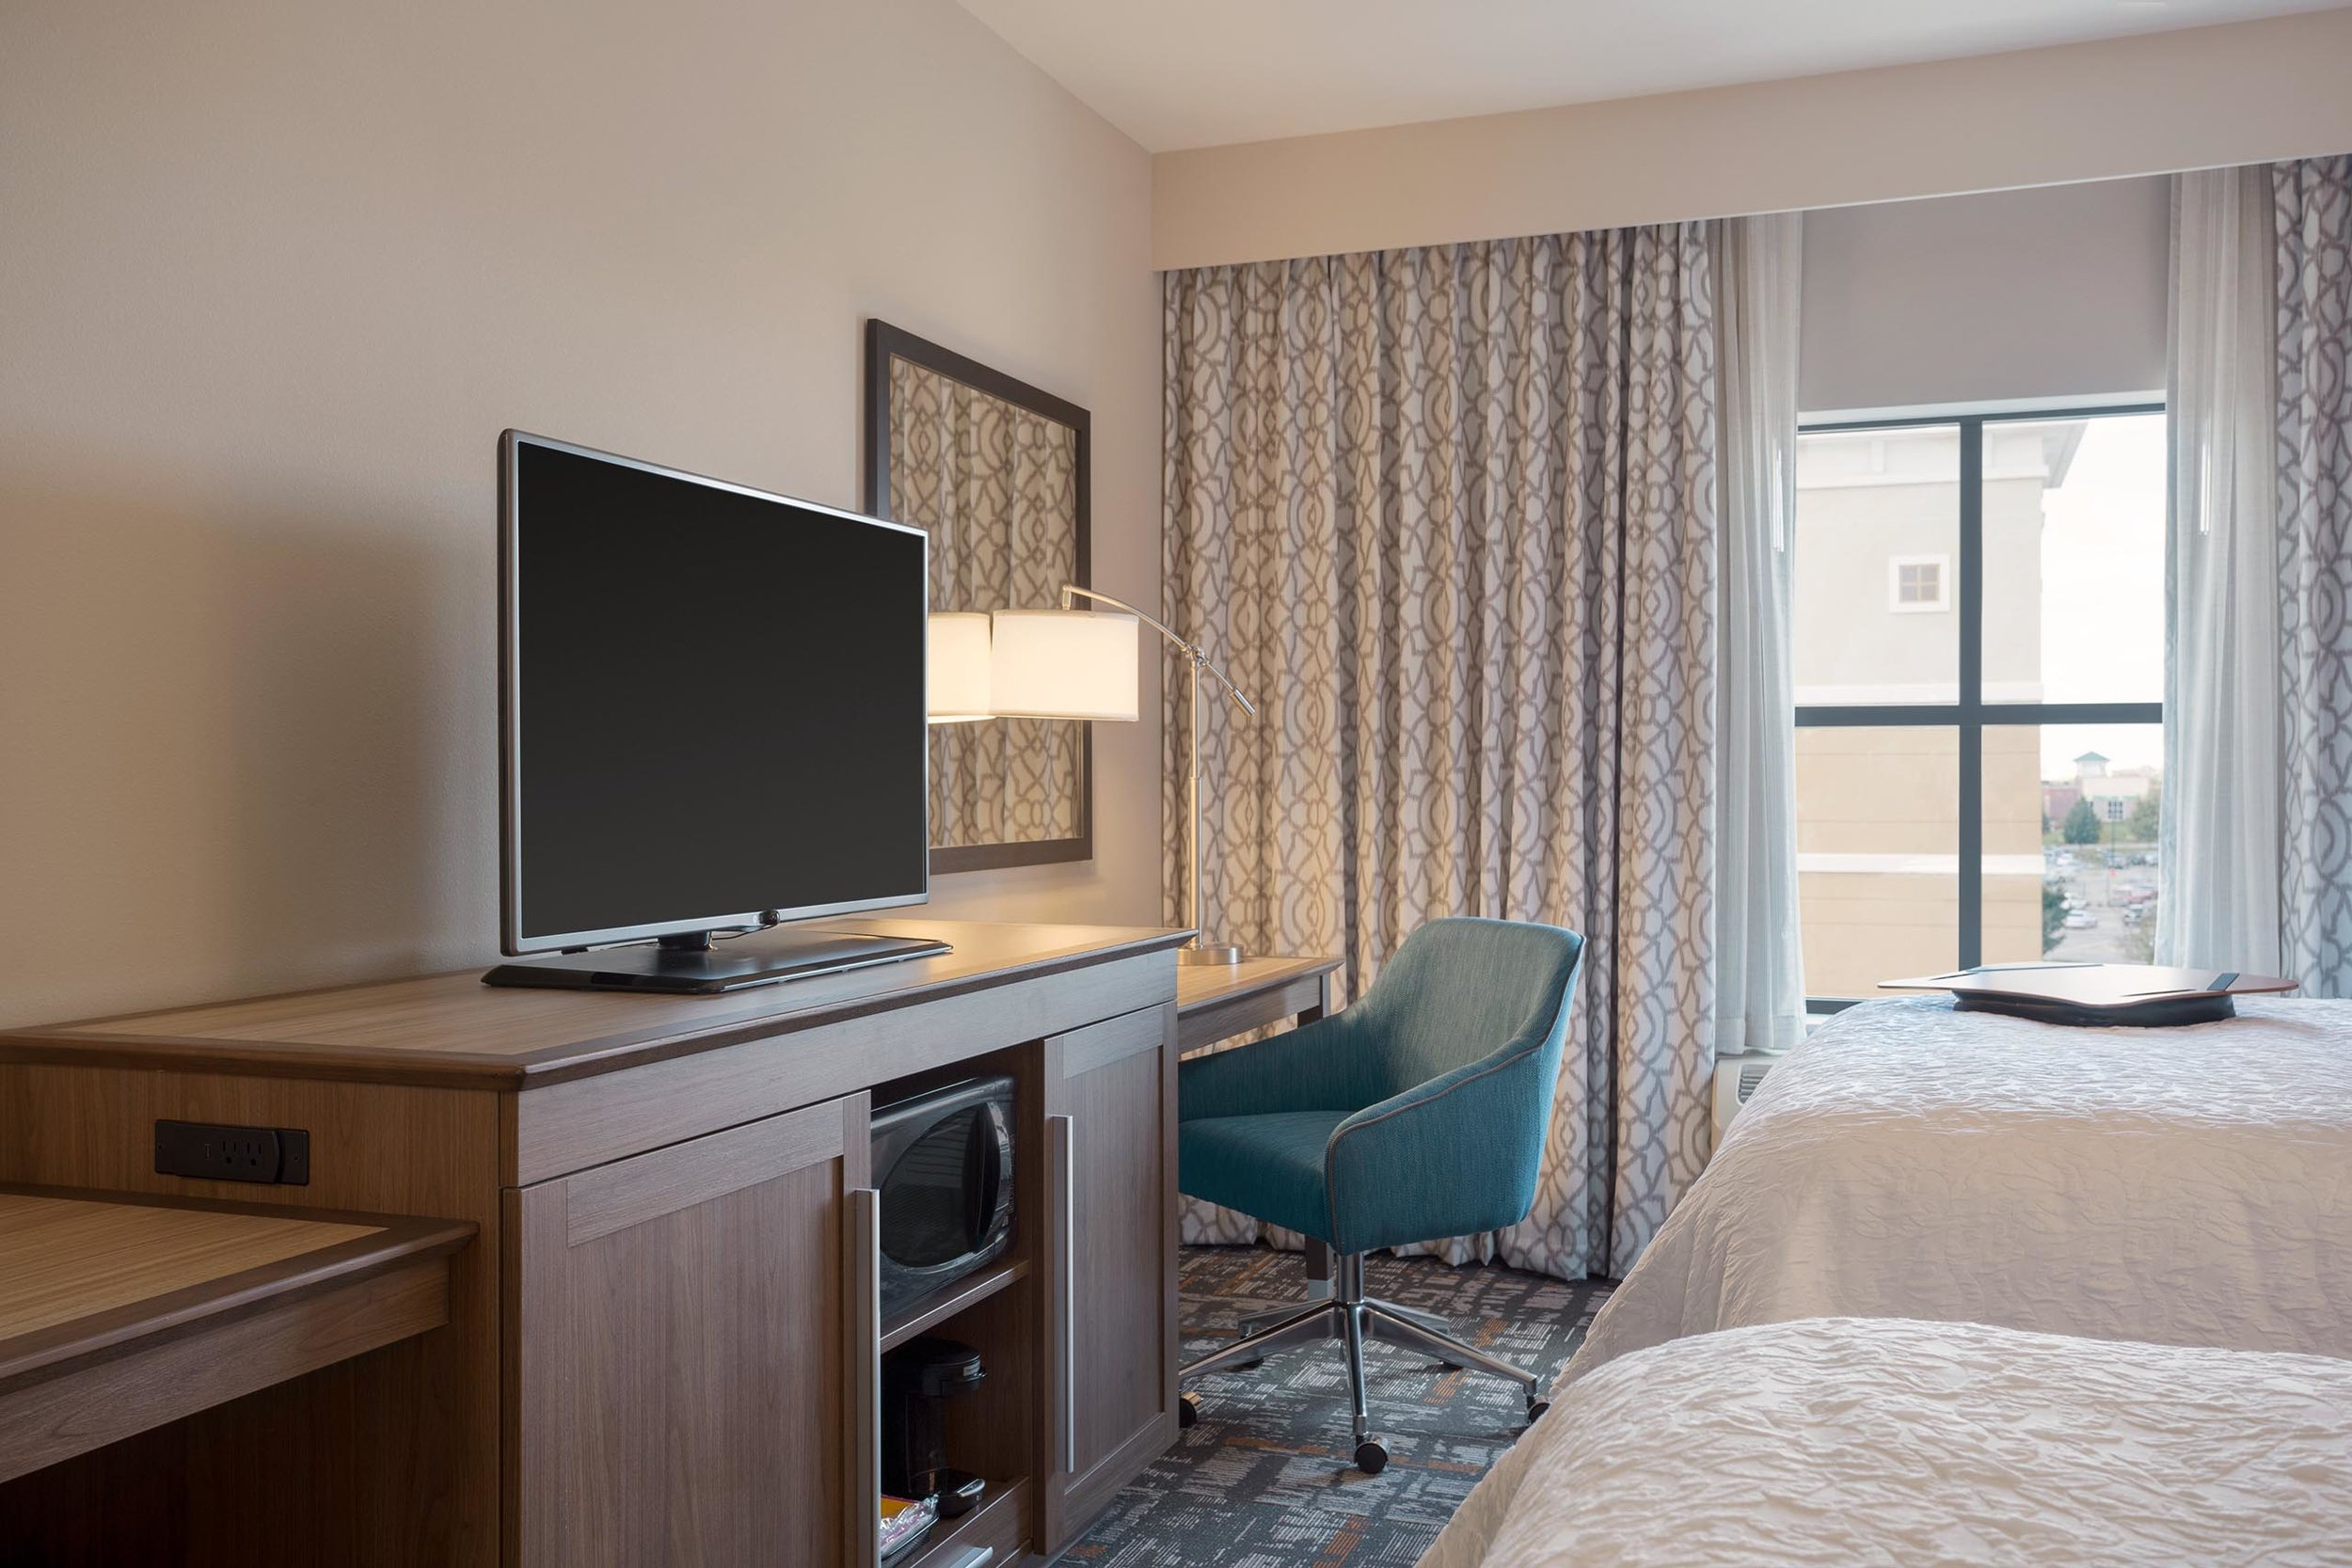 TV and desk area in a bedroom in the Hampton Inn & Suites in West Des Moines, IA